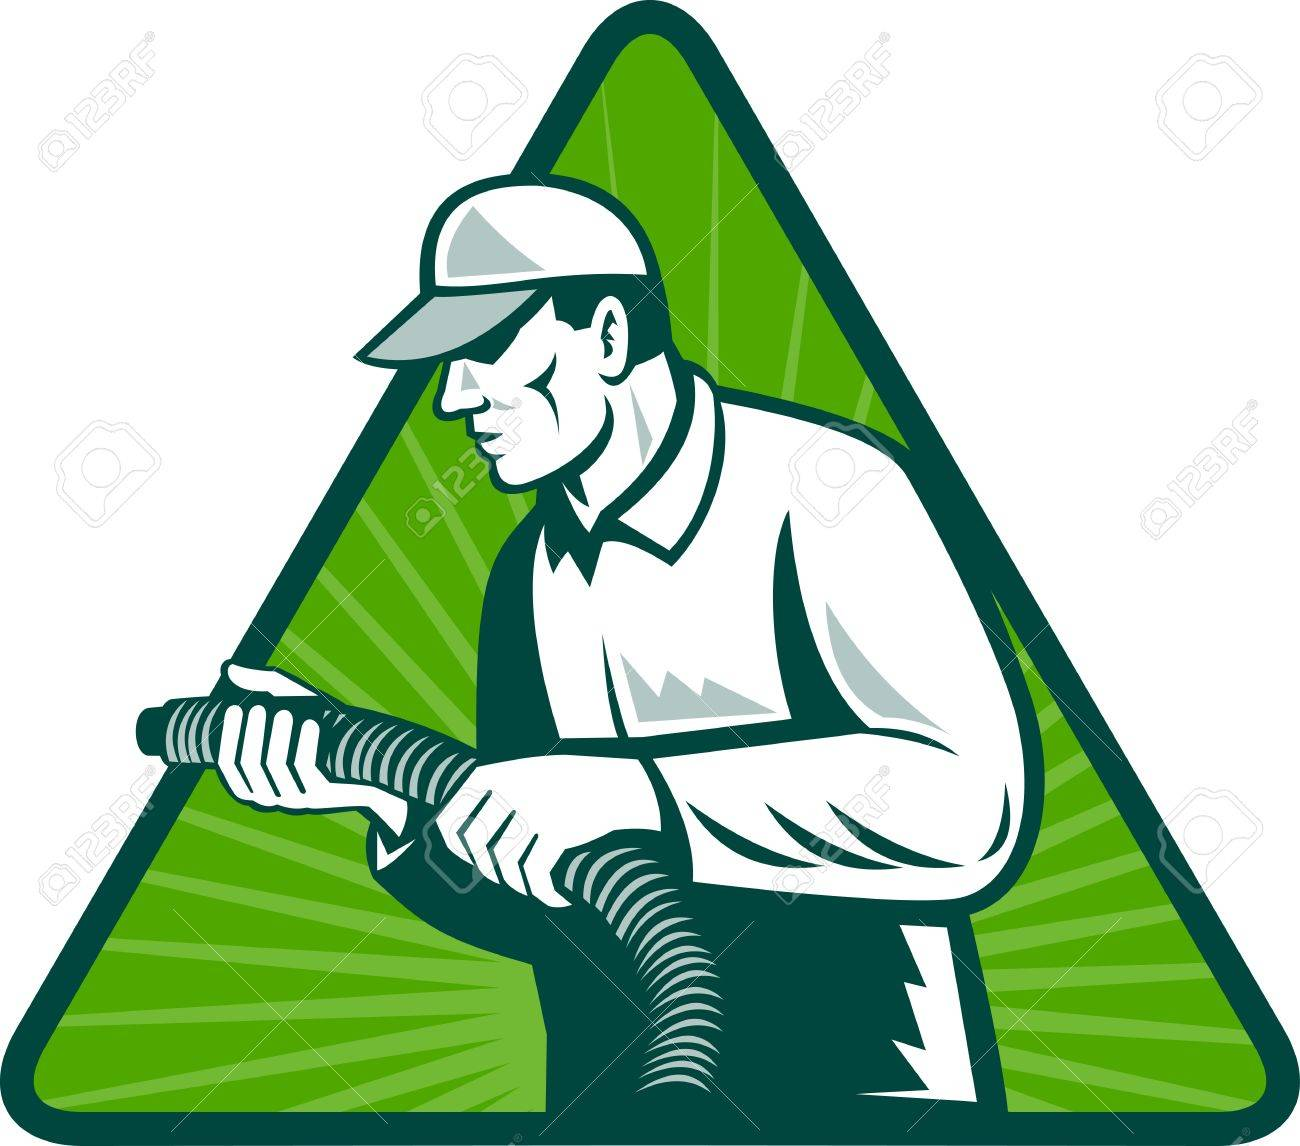 illustration of a tradesman home insulation technician holding a hose viewed from side set inside triangle with sunburst in background Stock Illustration - 10561227